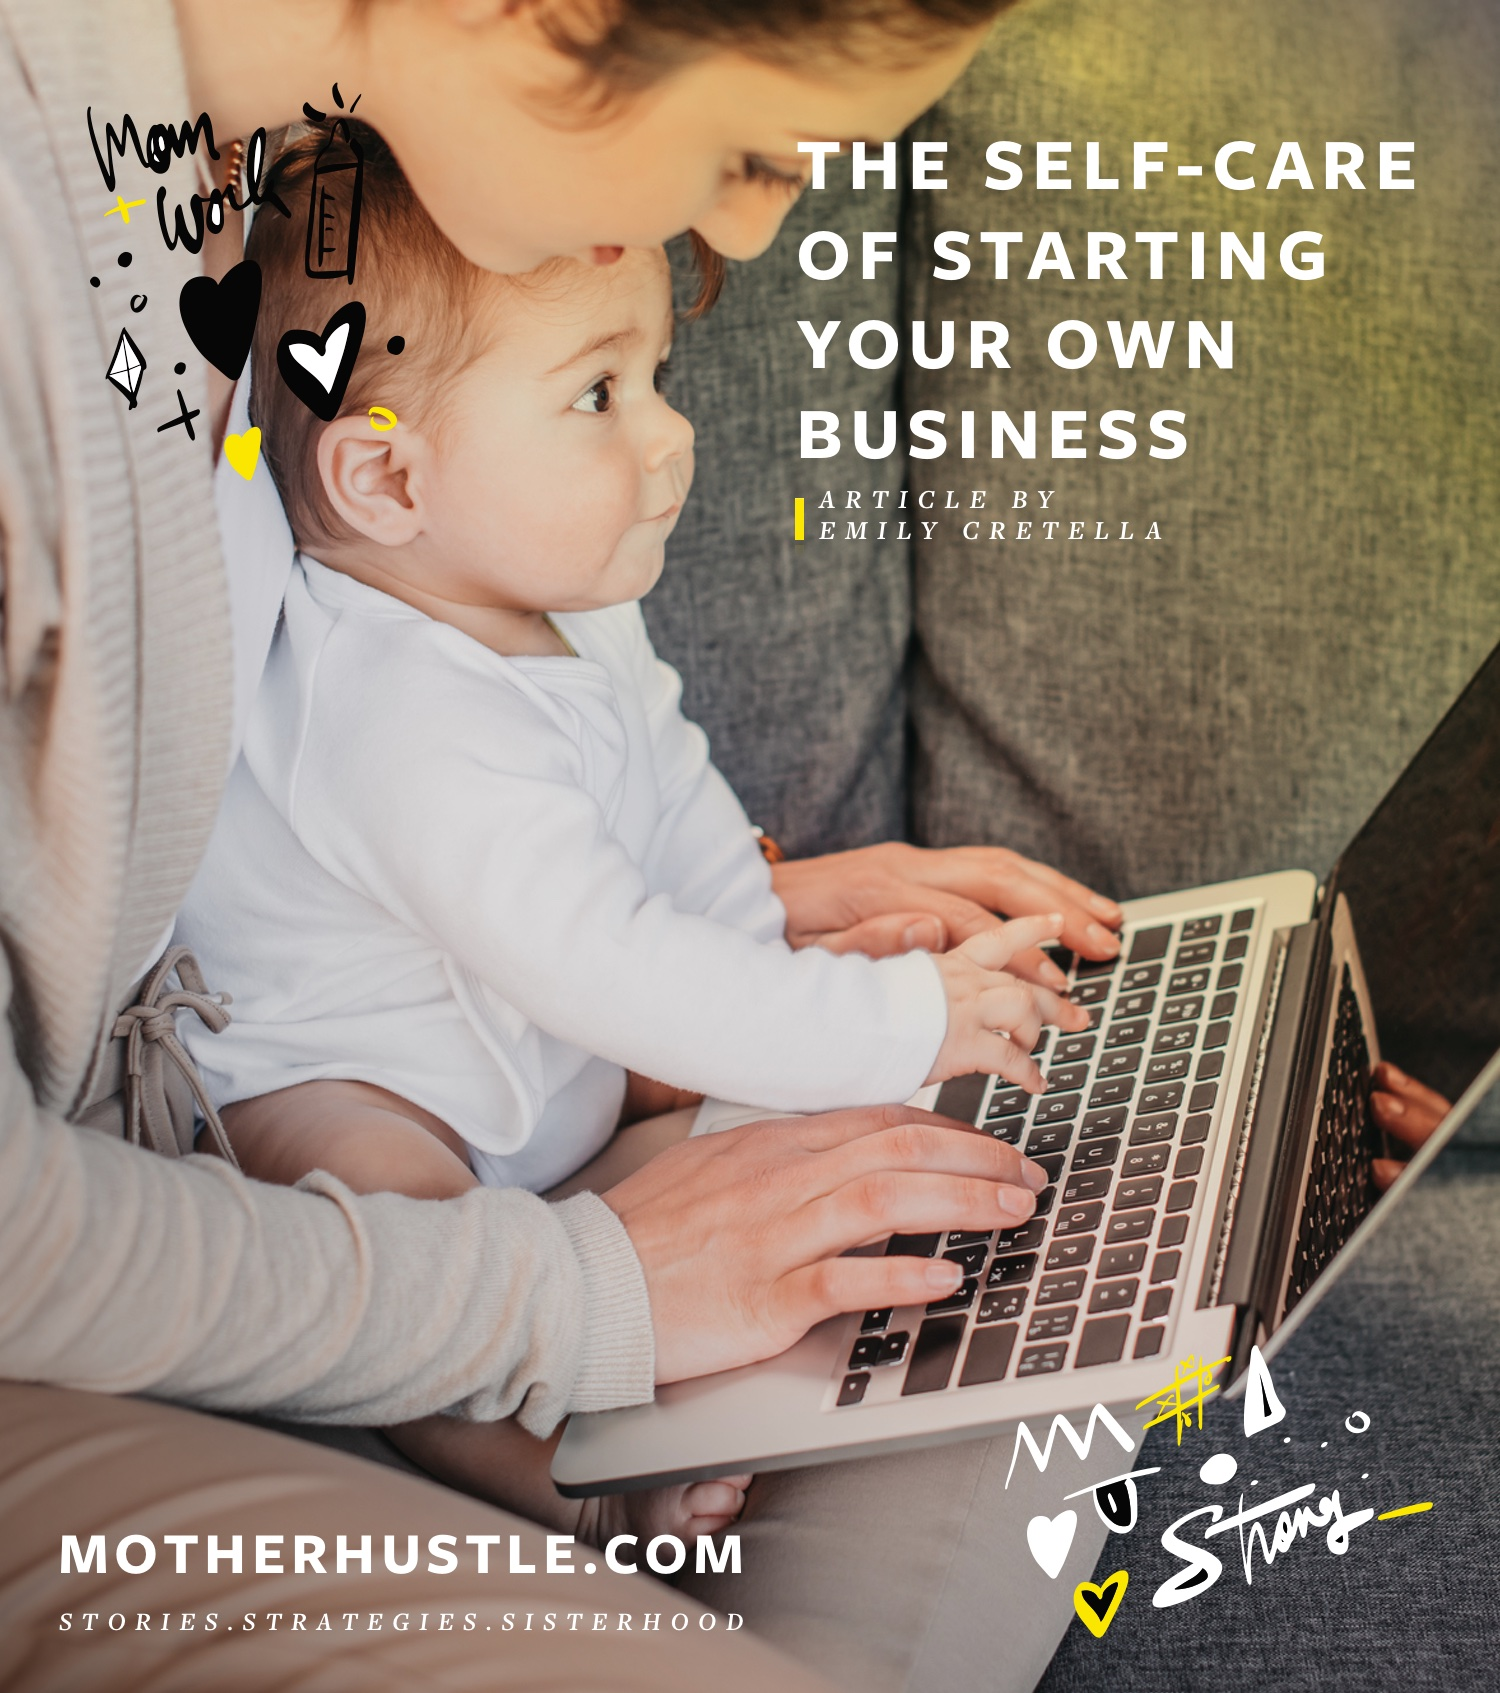 The Self-Care of Starting Your Own Business - by Emily Cretella for MotherHustle